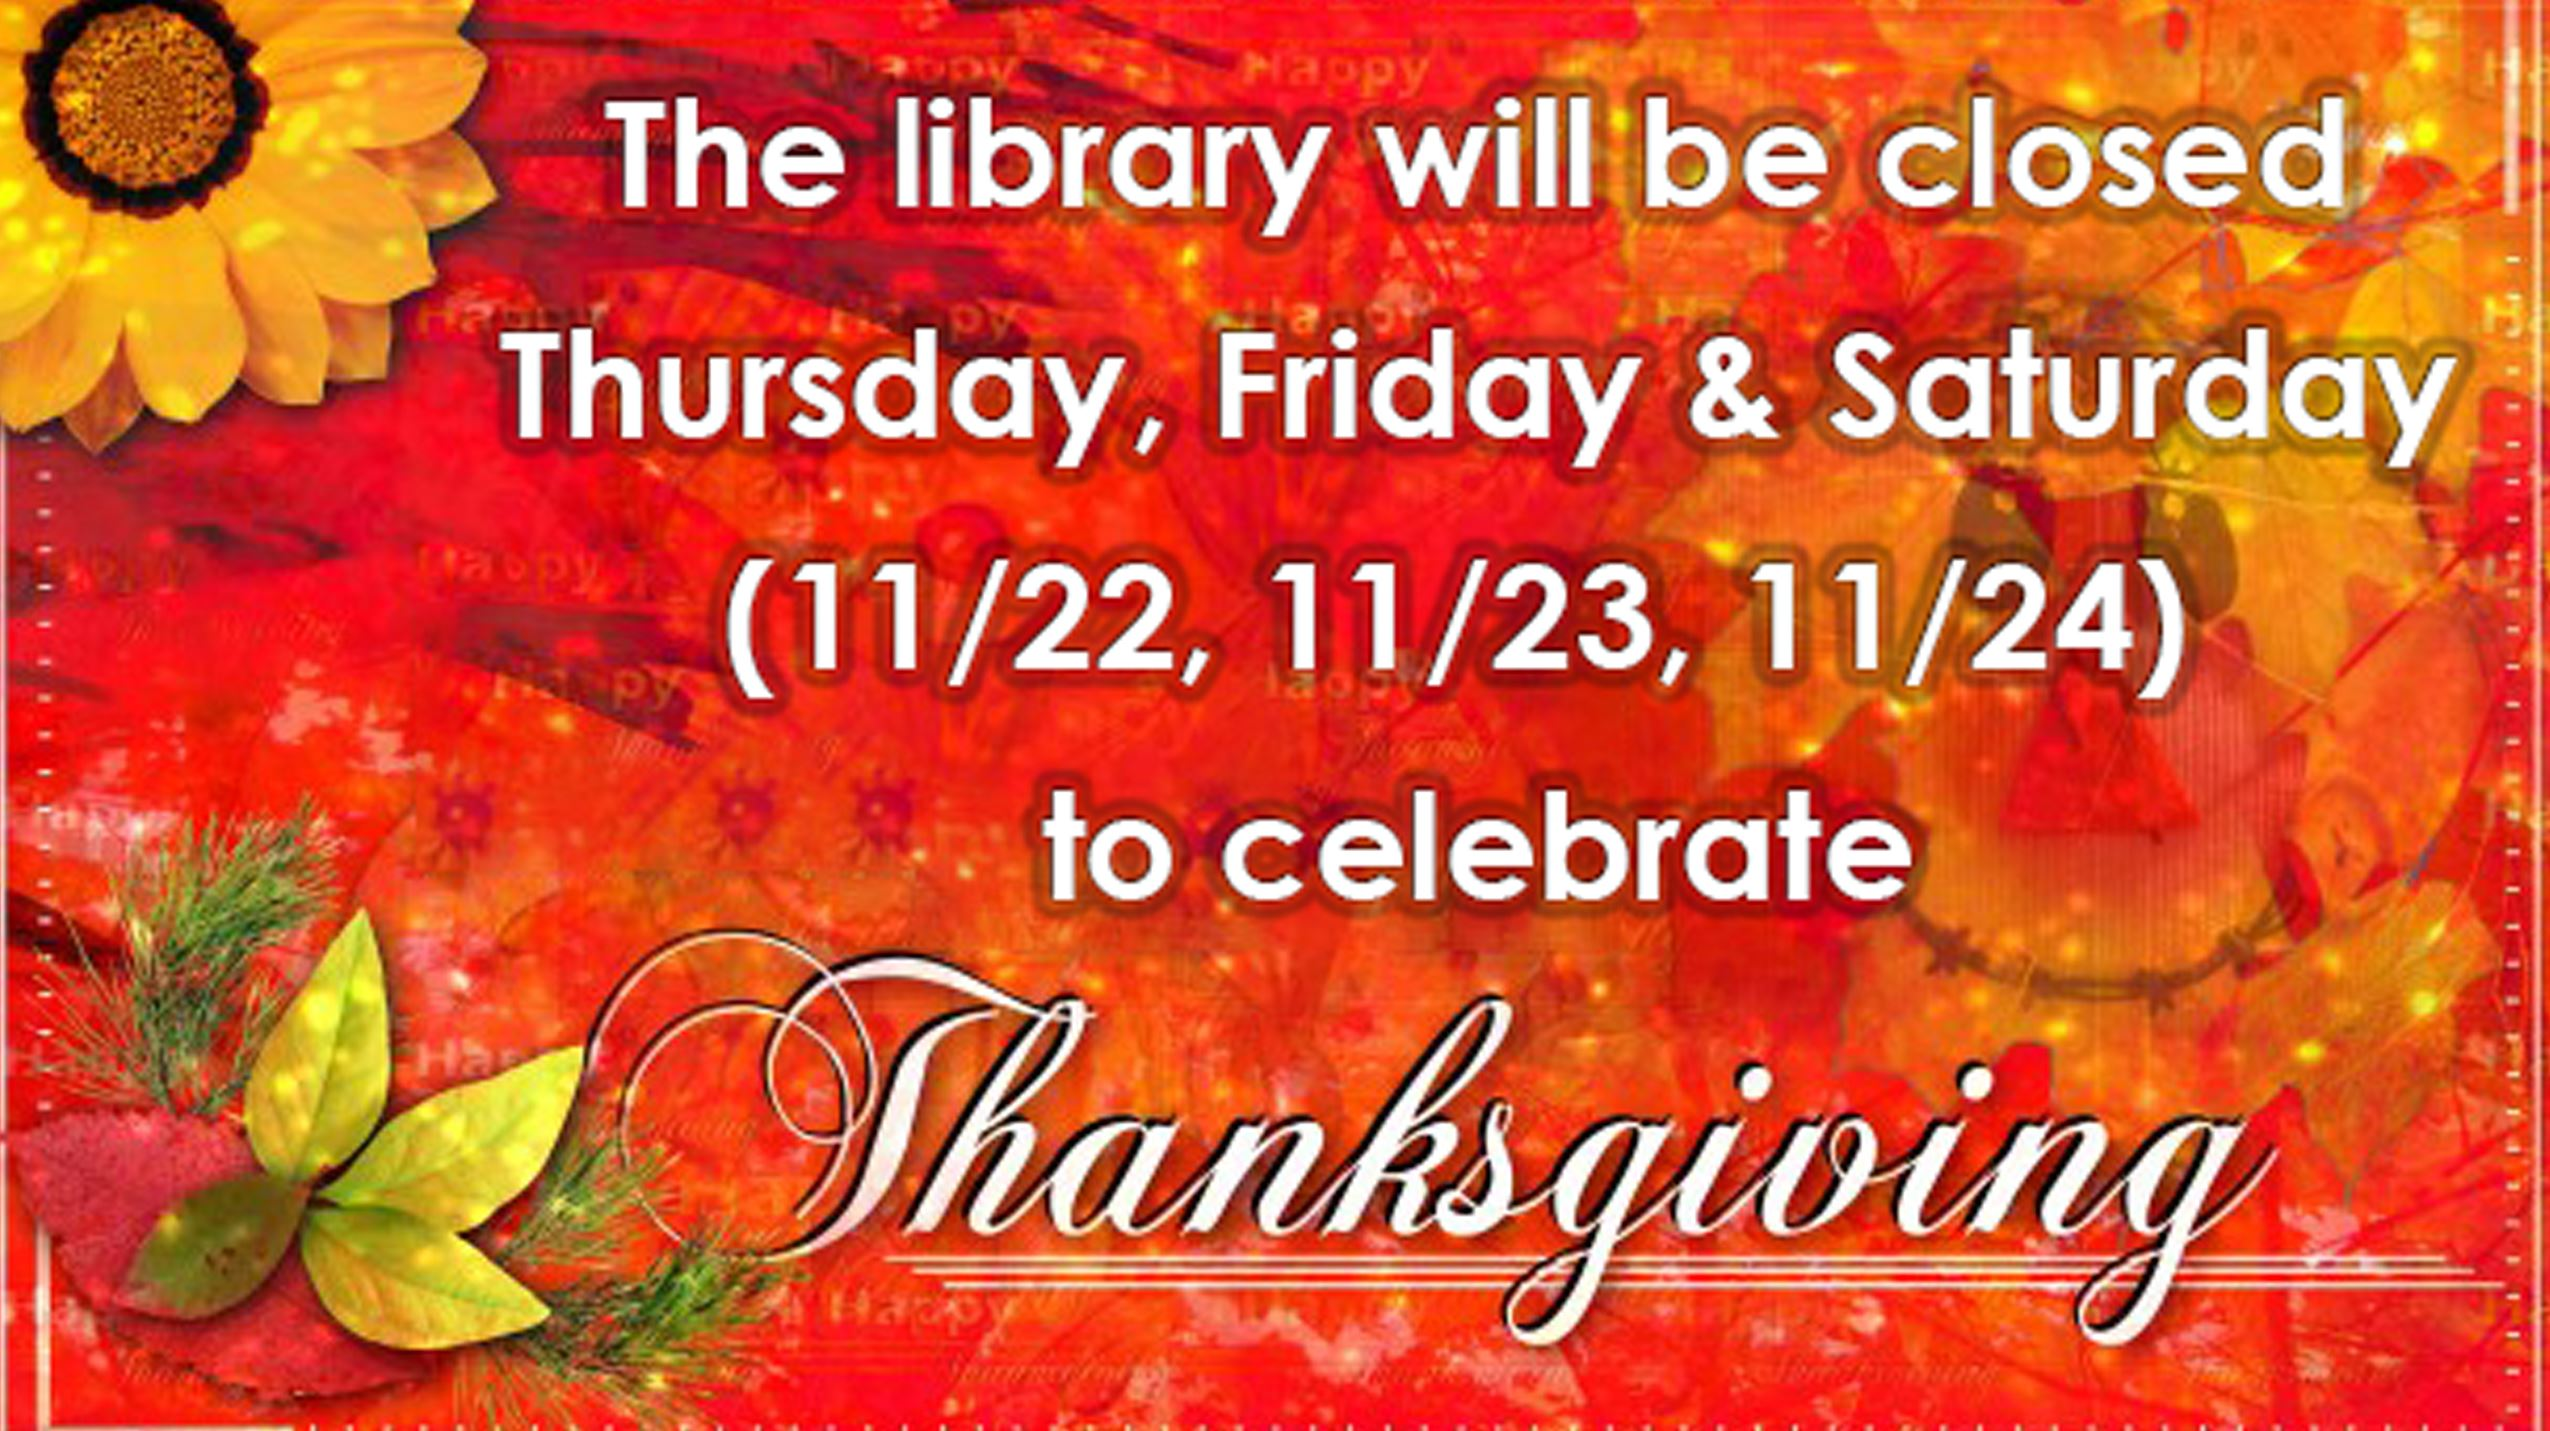 Orono Public Library will be closed Thursday Friday and Saturday November 22nd 23rd and 24th